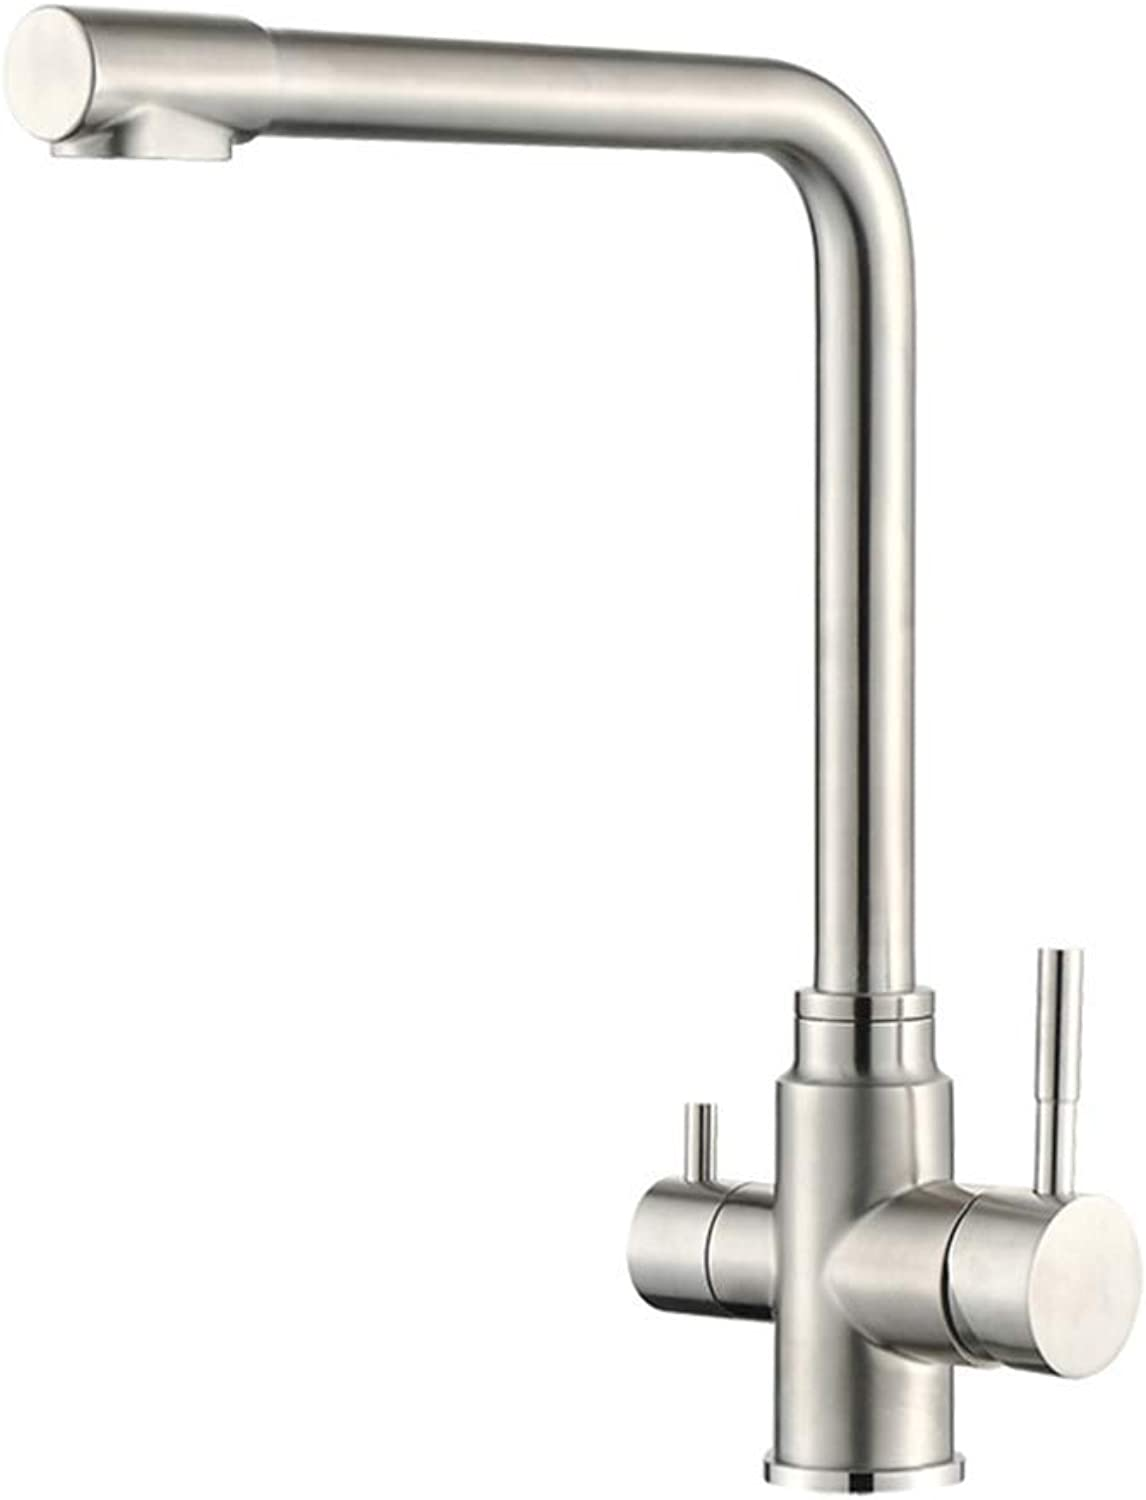 Basin Faucetmultifunctional Water Purification Faucet Washing Vegetable Basin Cold and Hot 304 Stainless Steel redary Flume Faucet